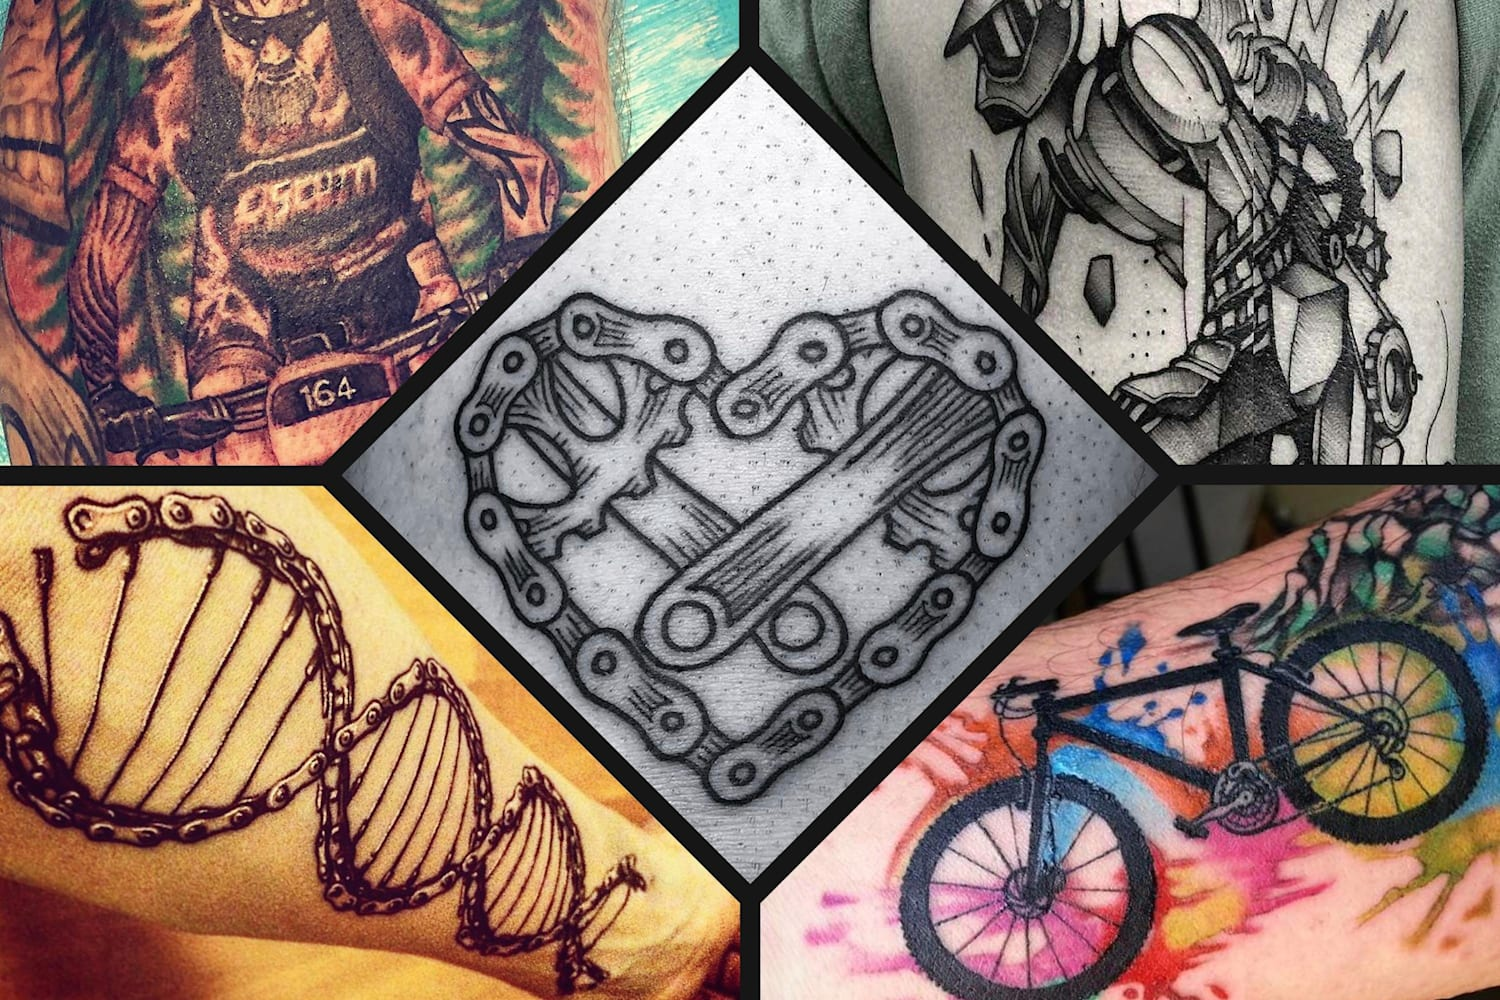 Mountain Biking Tattoos 14 Of The Coolest Designs